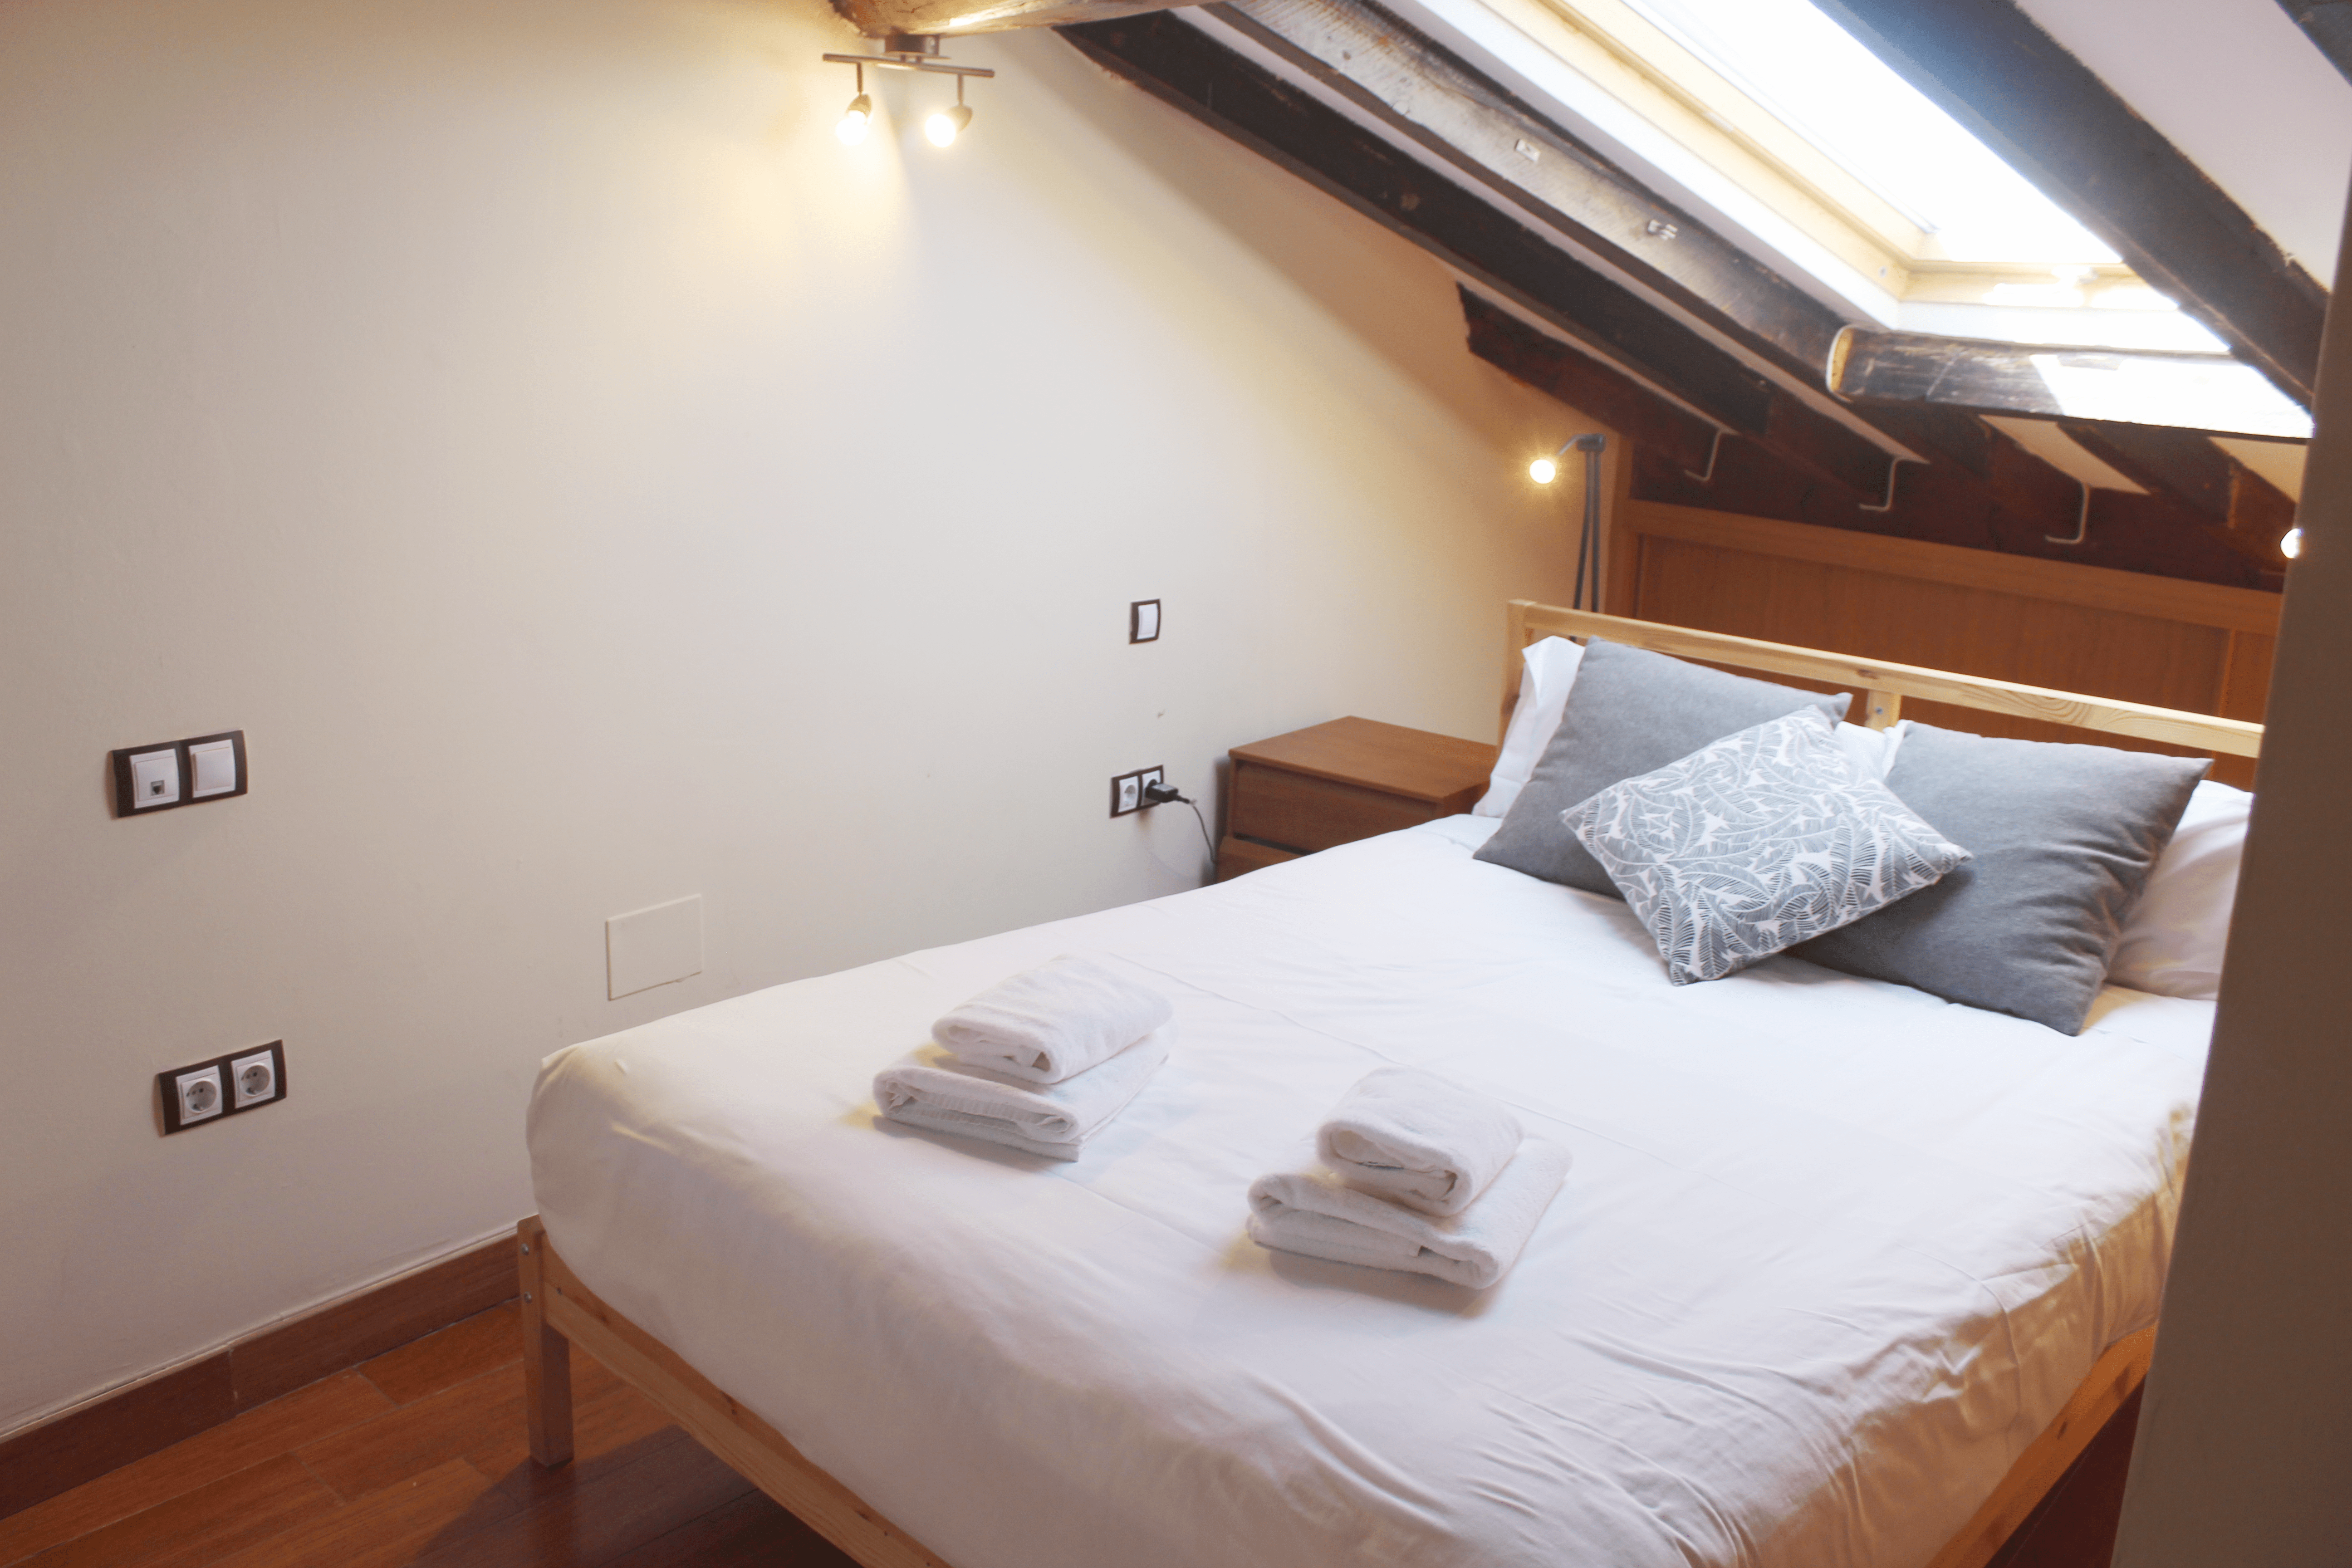 Lacort - Penthouse in Valladolid